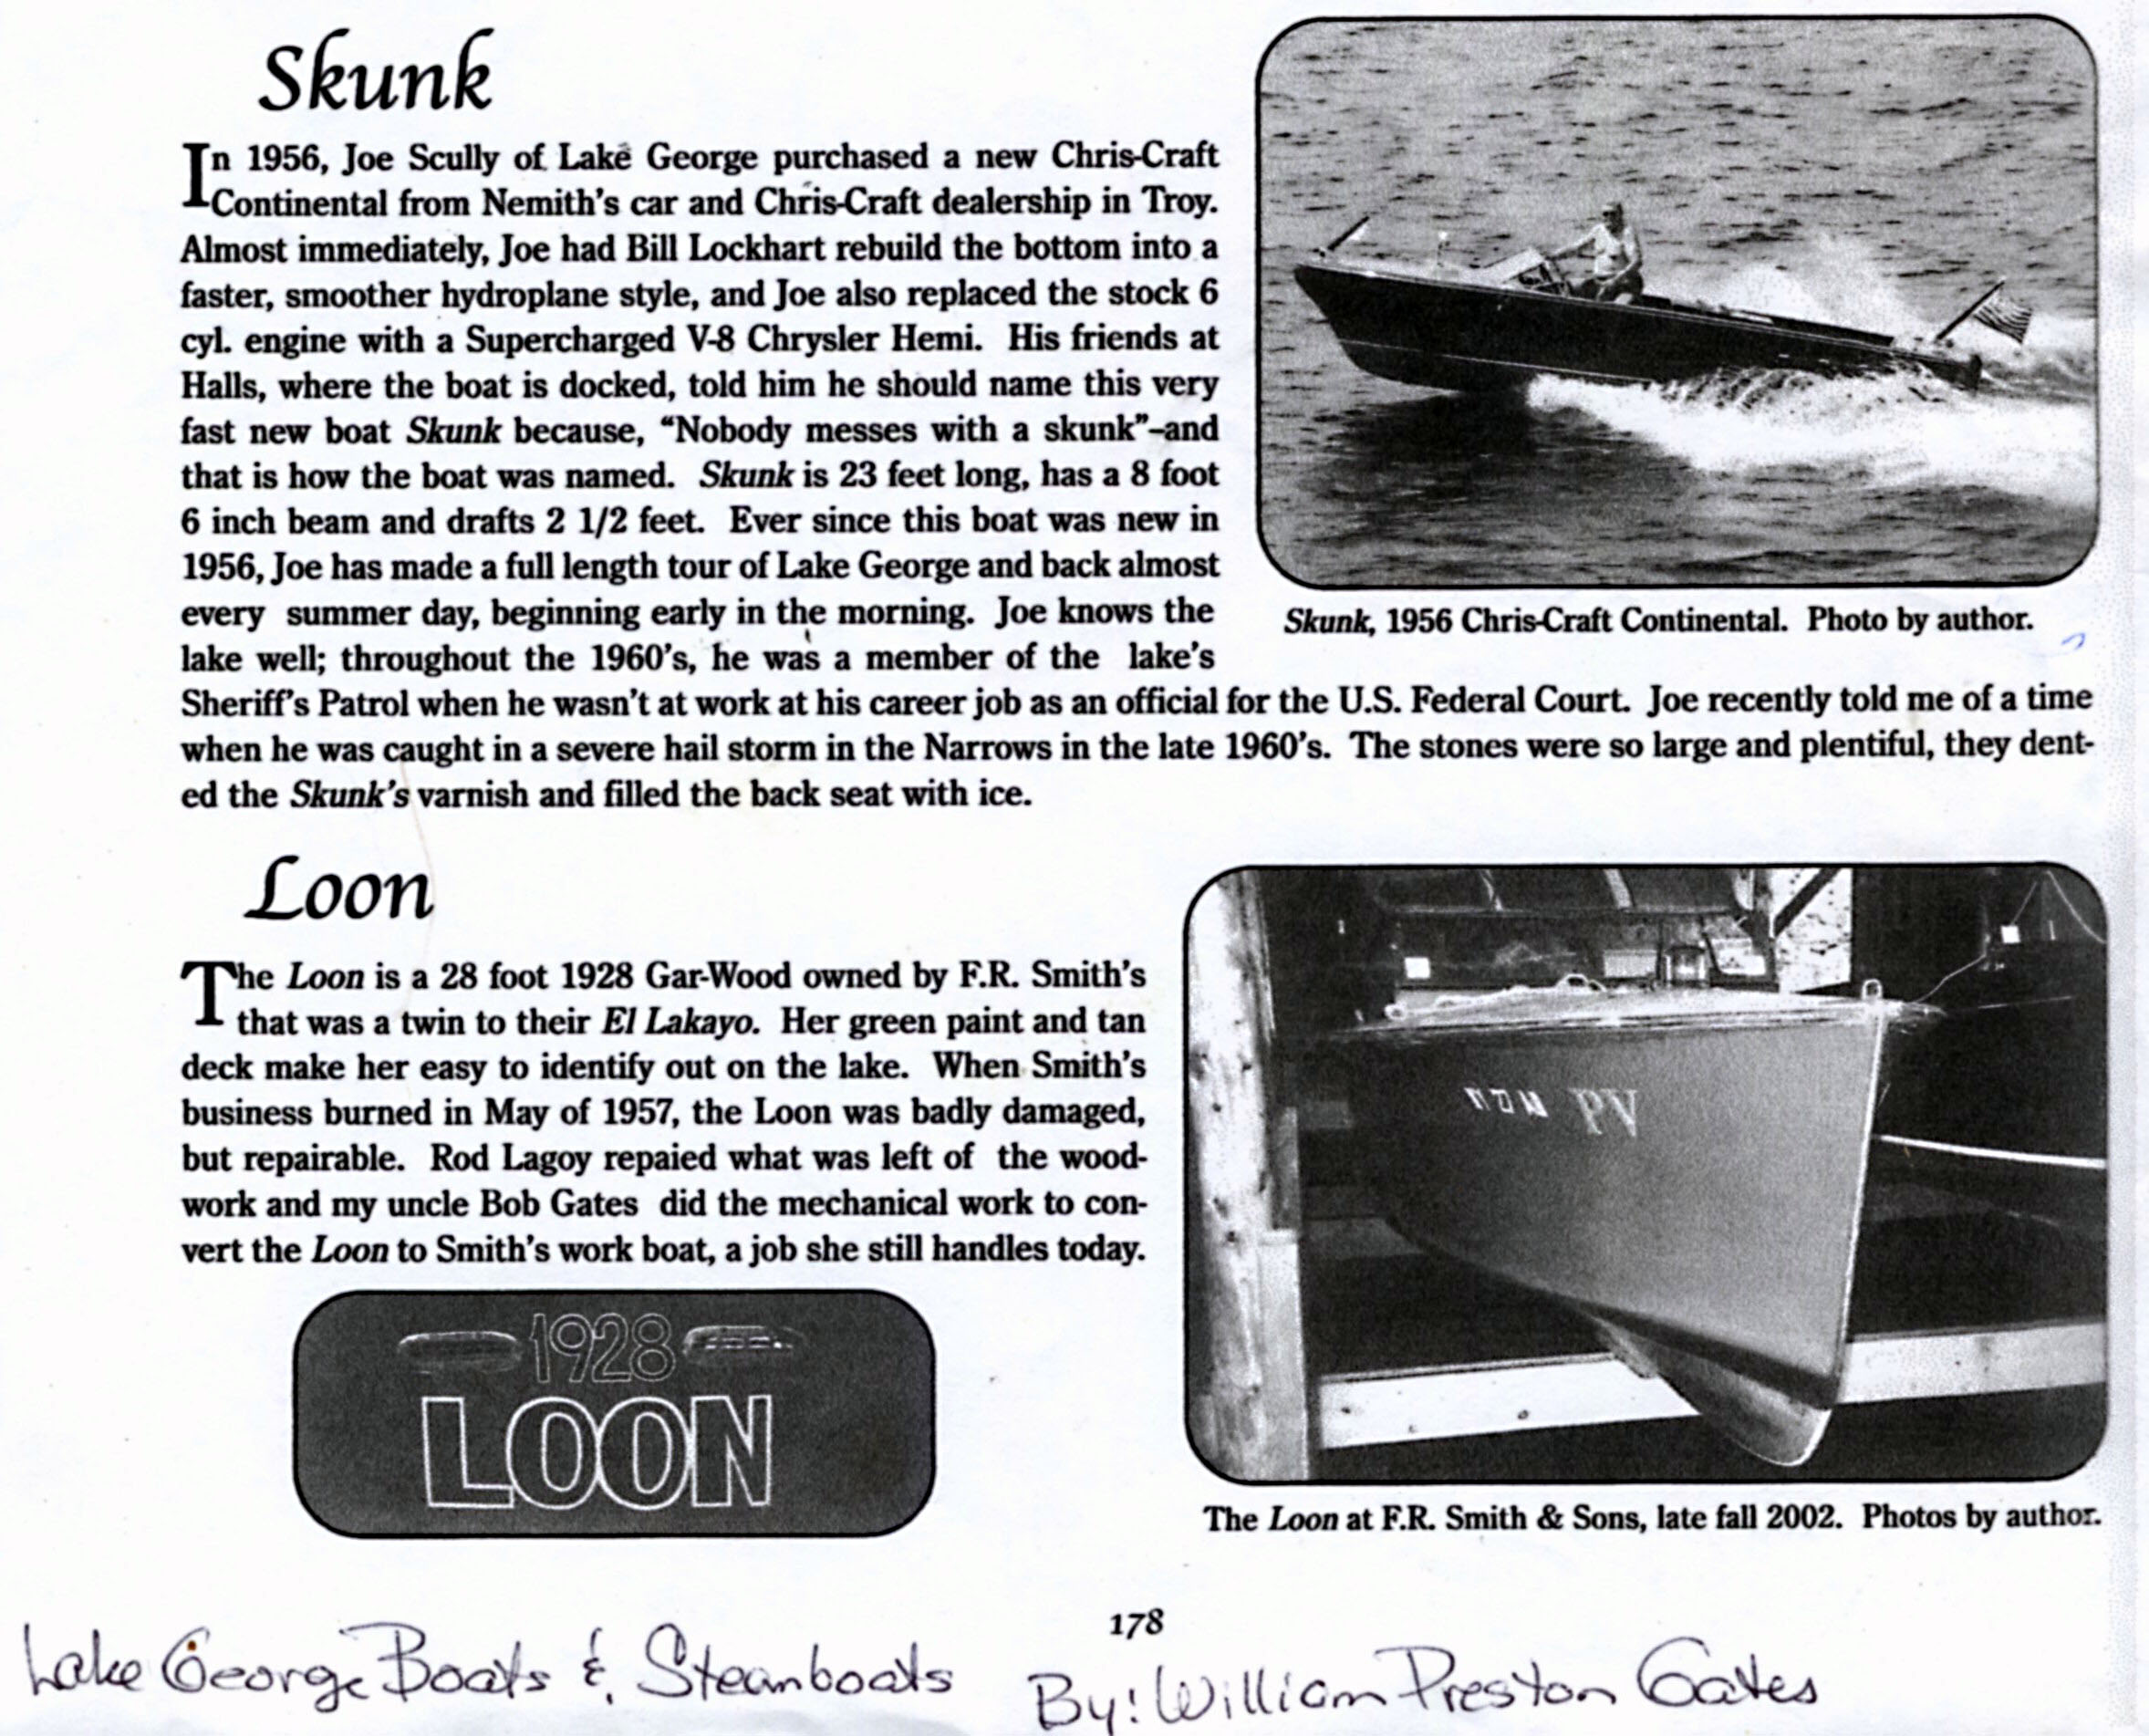 skunk in w p gates lake george boats and steamboa hull ray